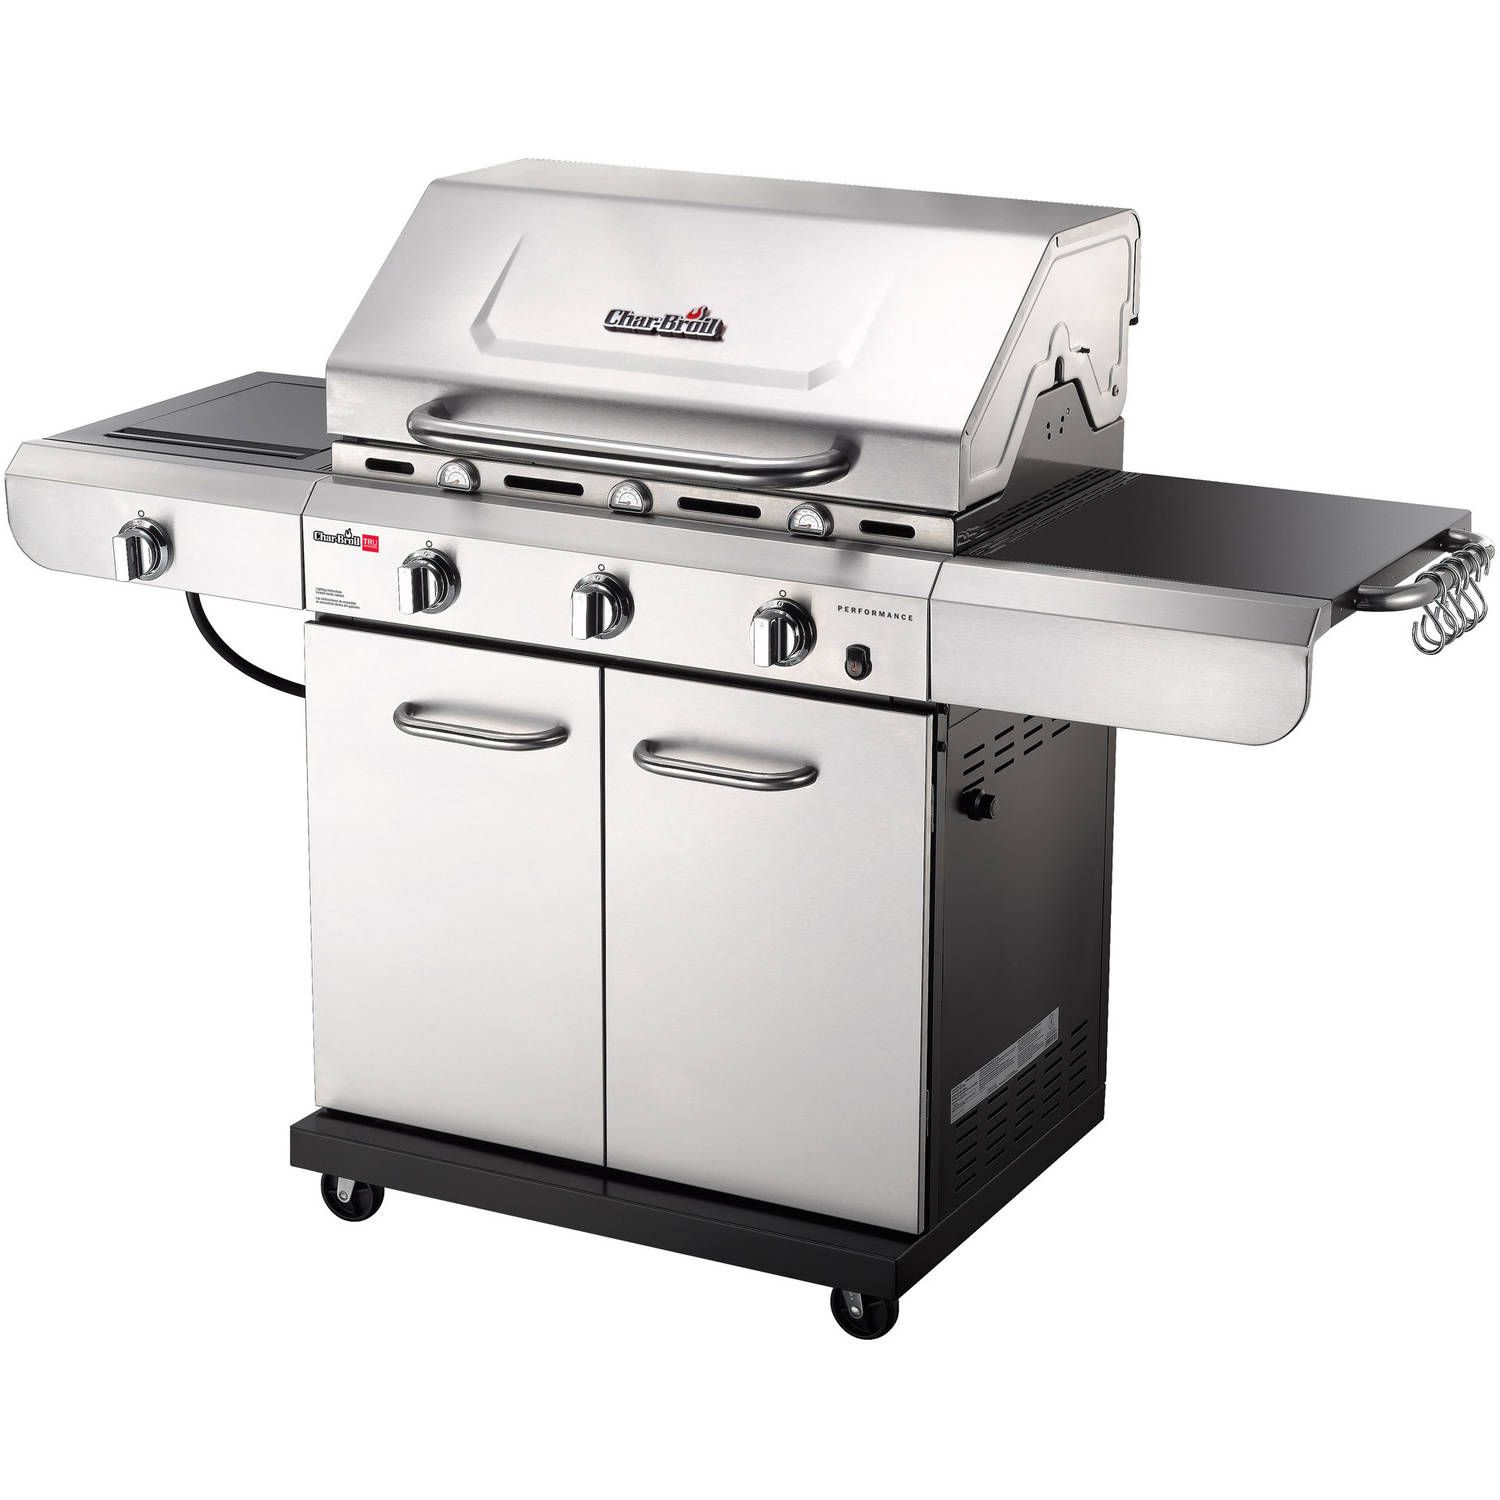 Grill Barbeque BBQ Char Broil Burner Gas Professional Cook Propane